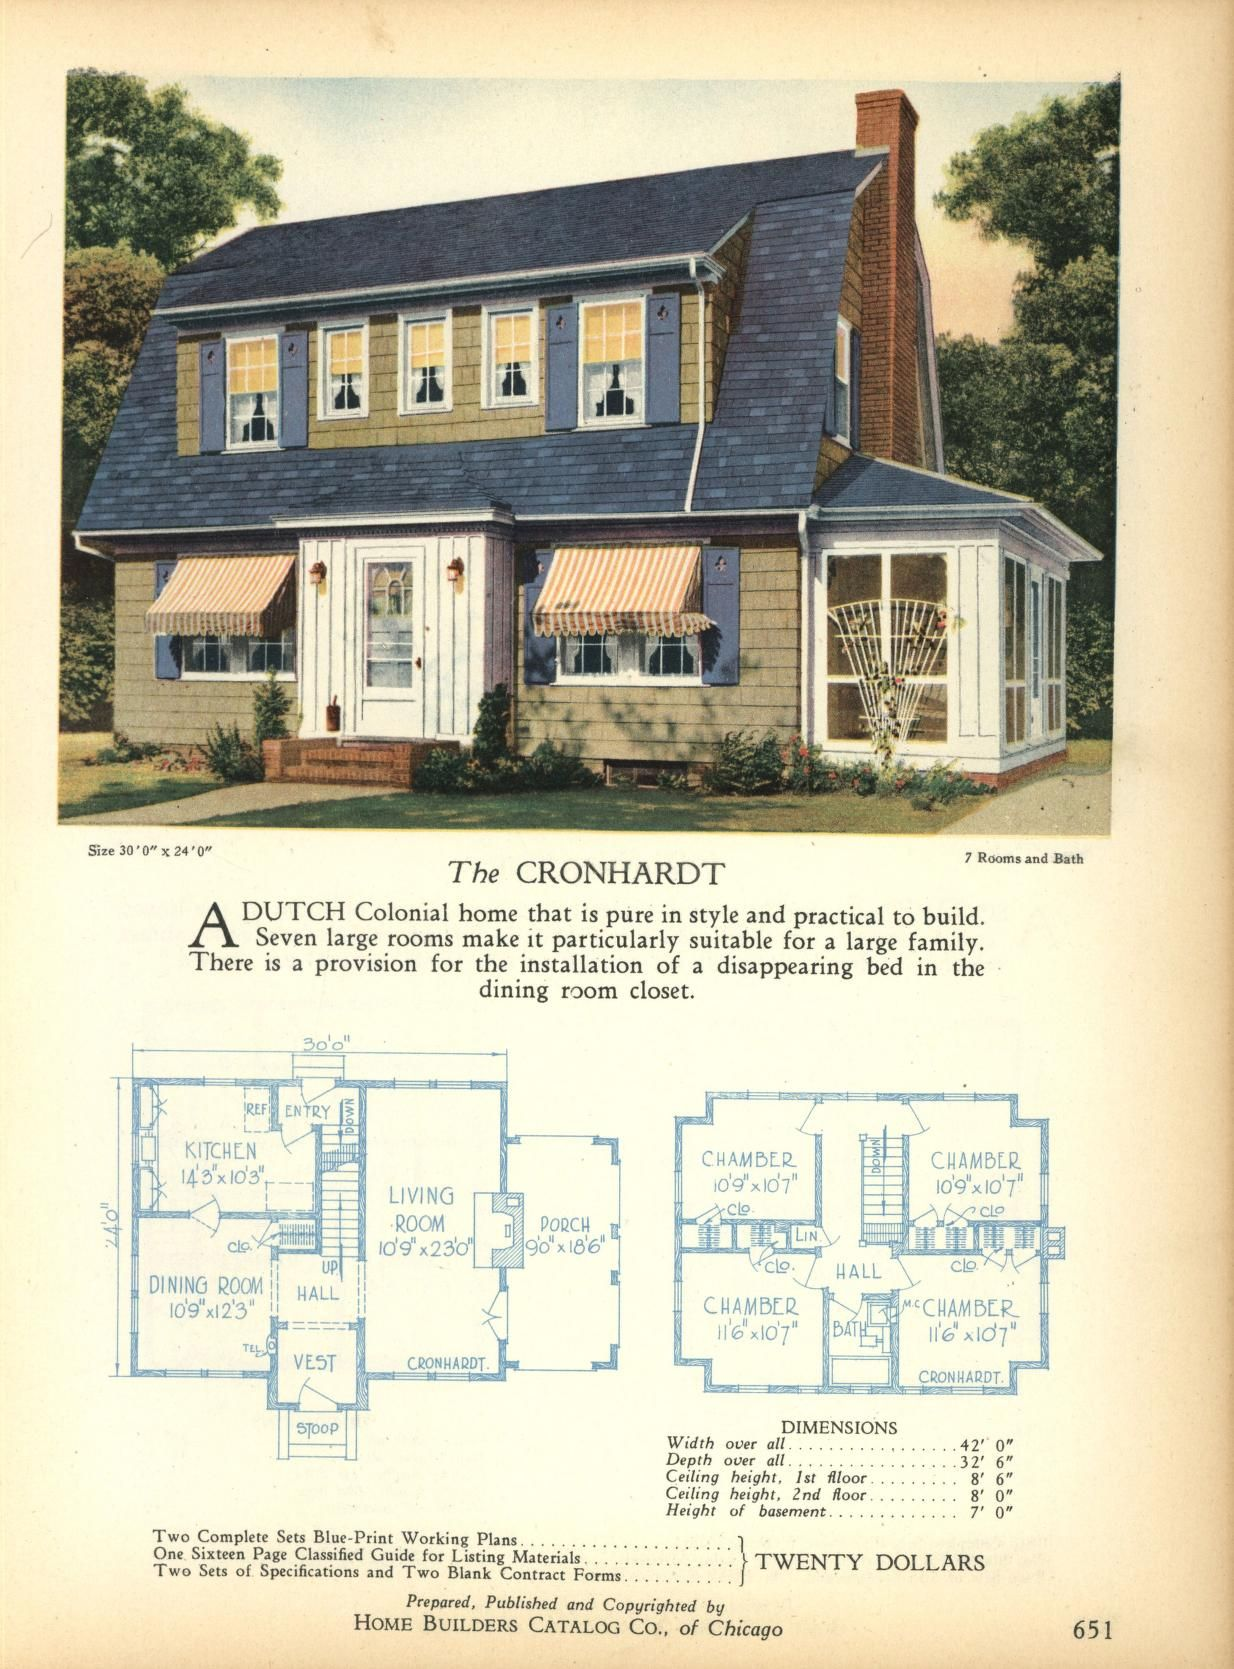 Amazing The Cronhardt   Home Builders Catalog: Plans Of All Types Of Small Homes By  Home